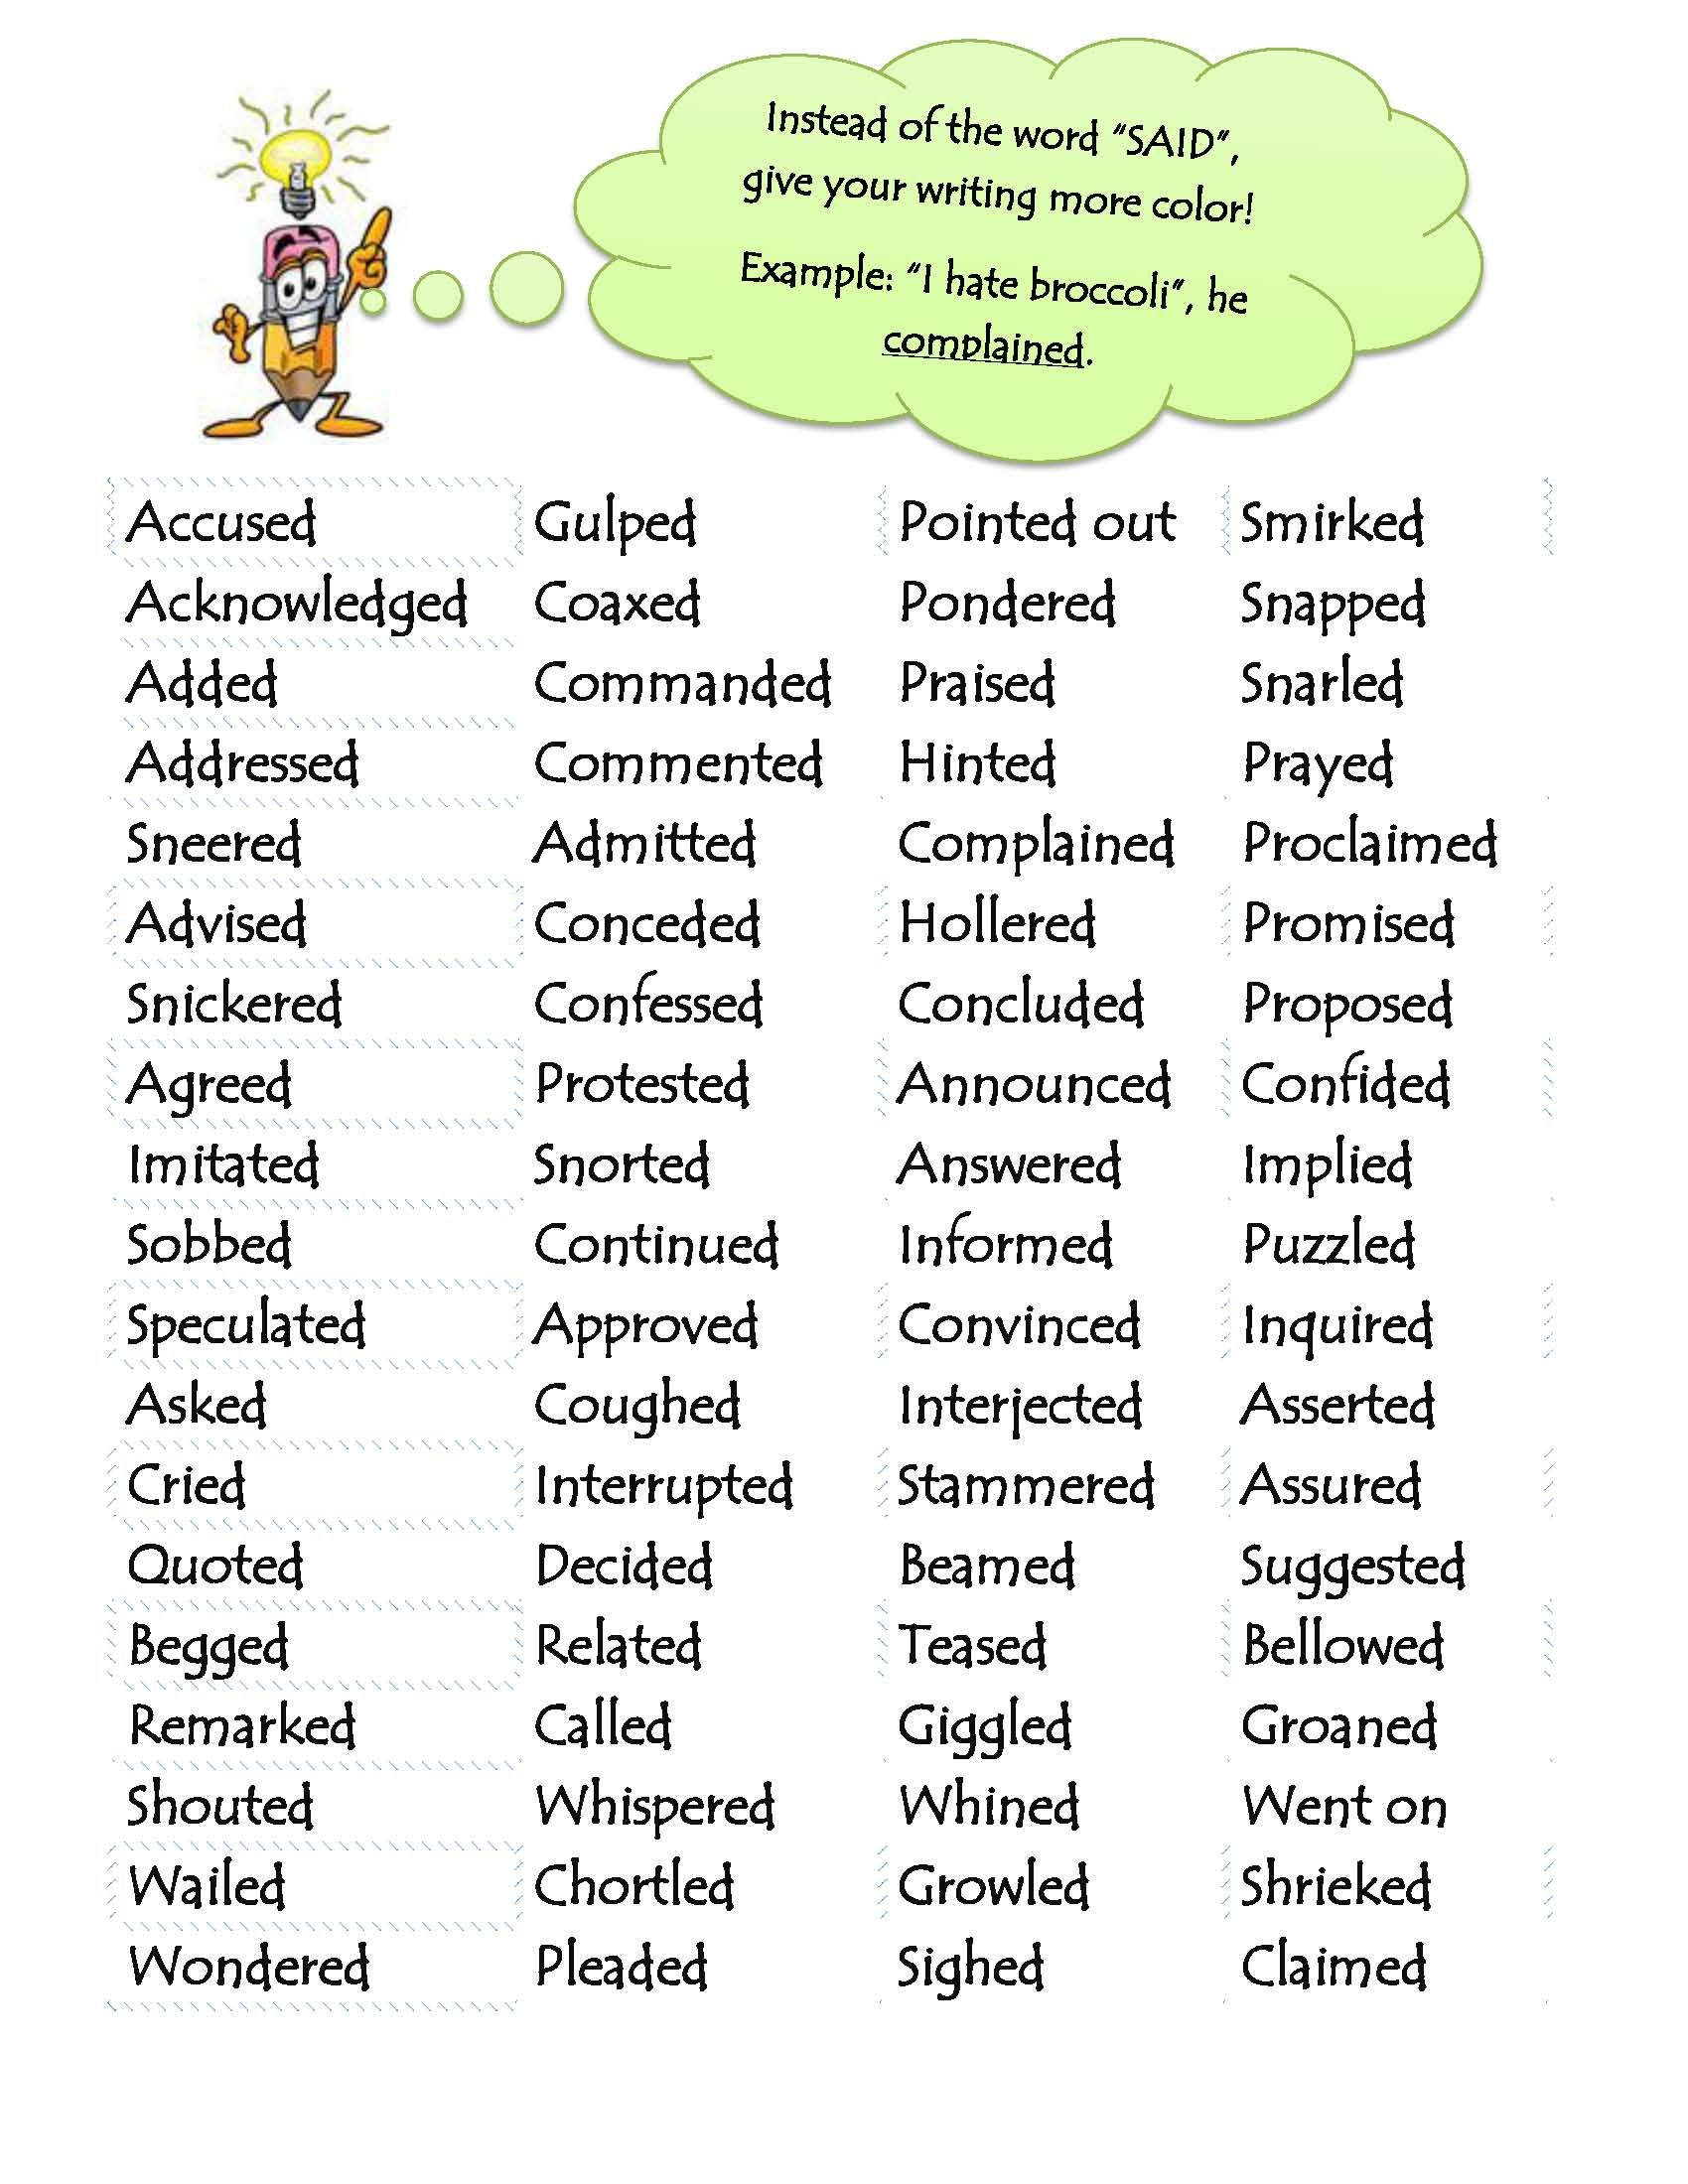 Words Instead Of Said Handout